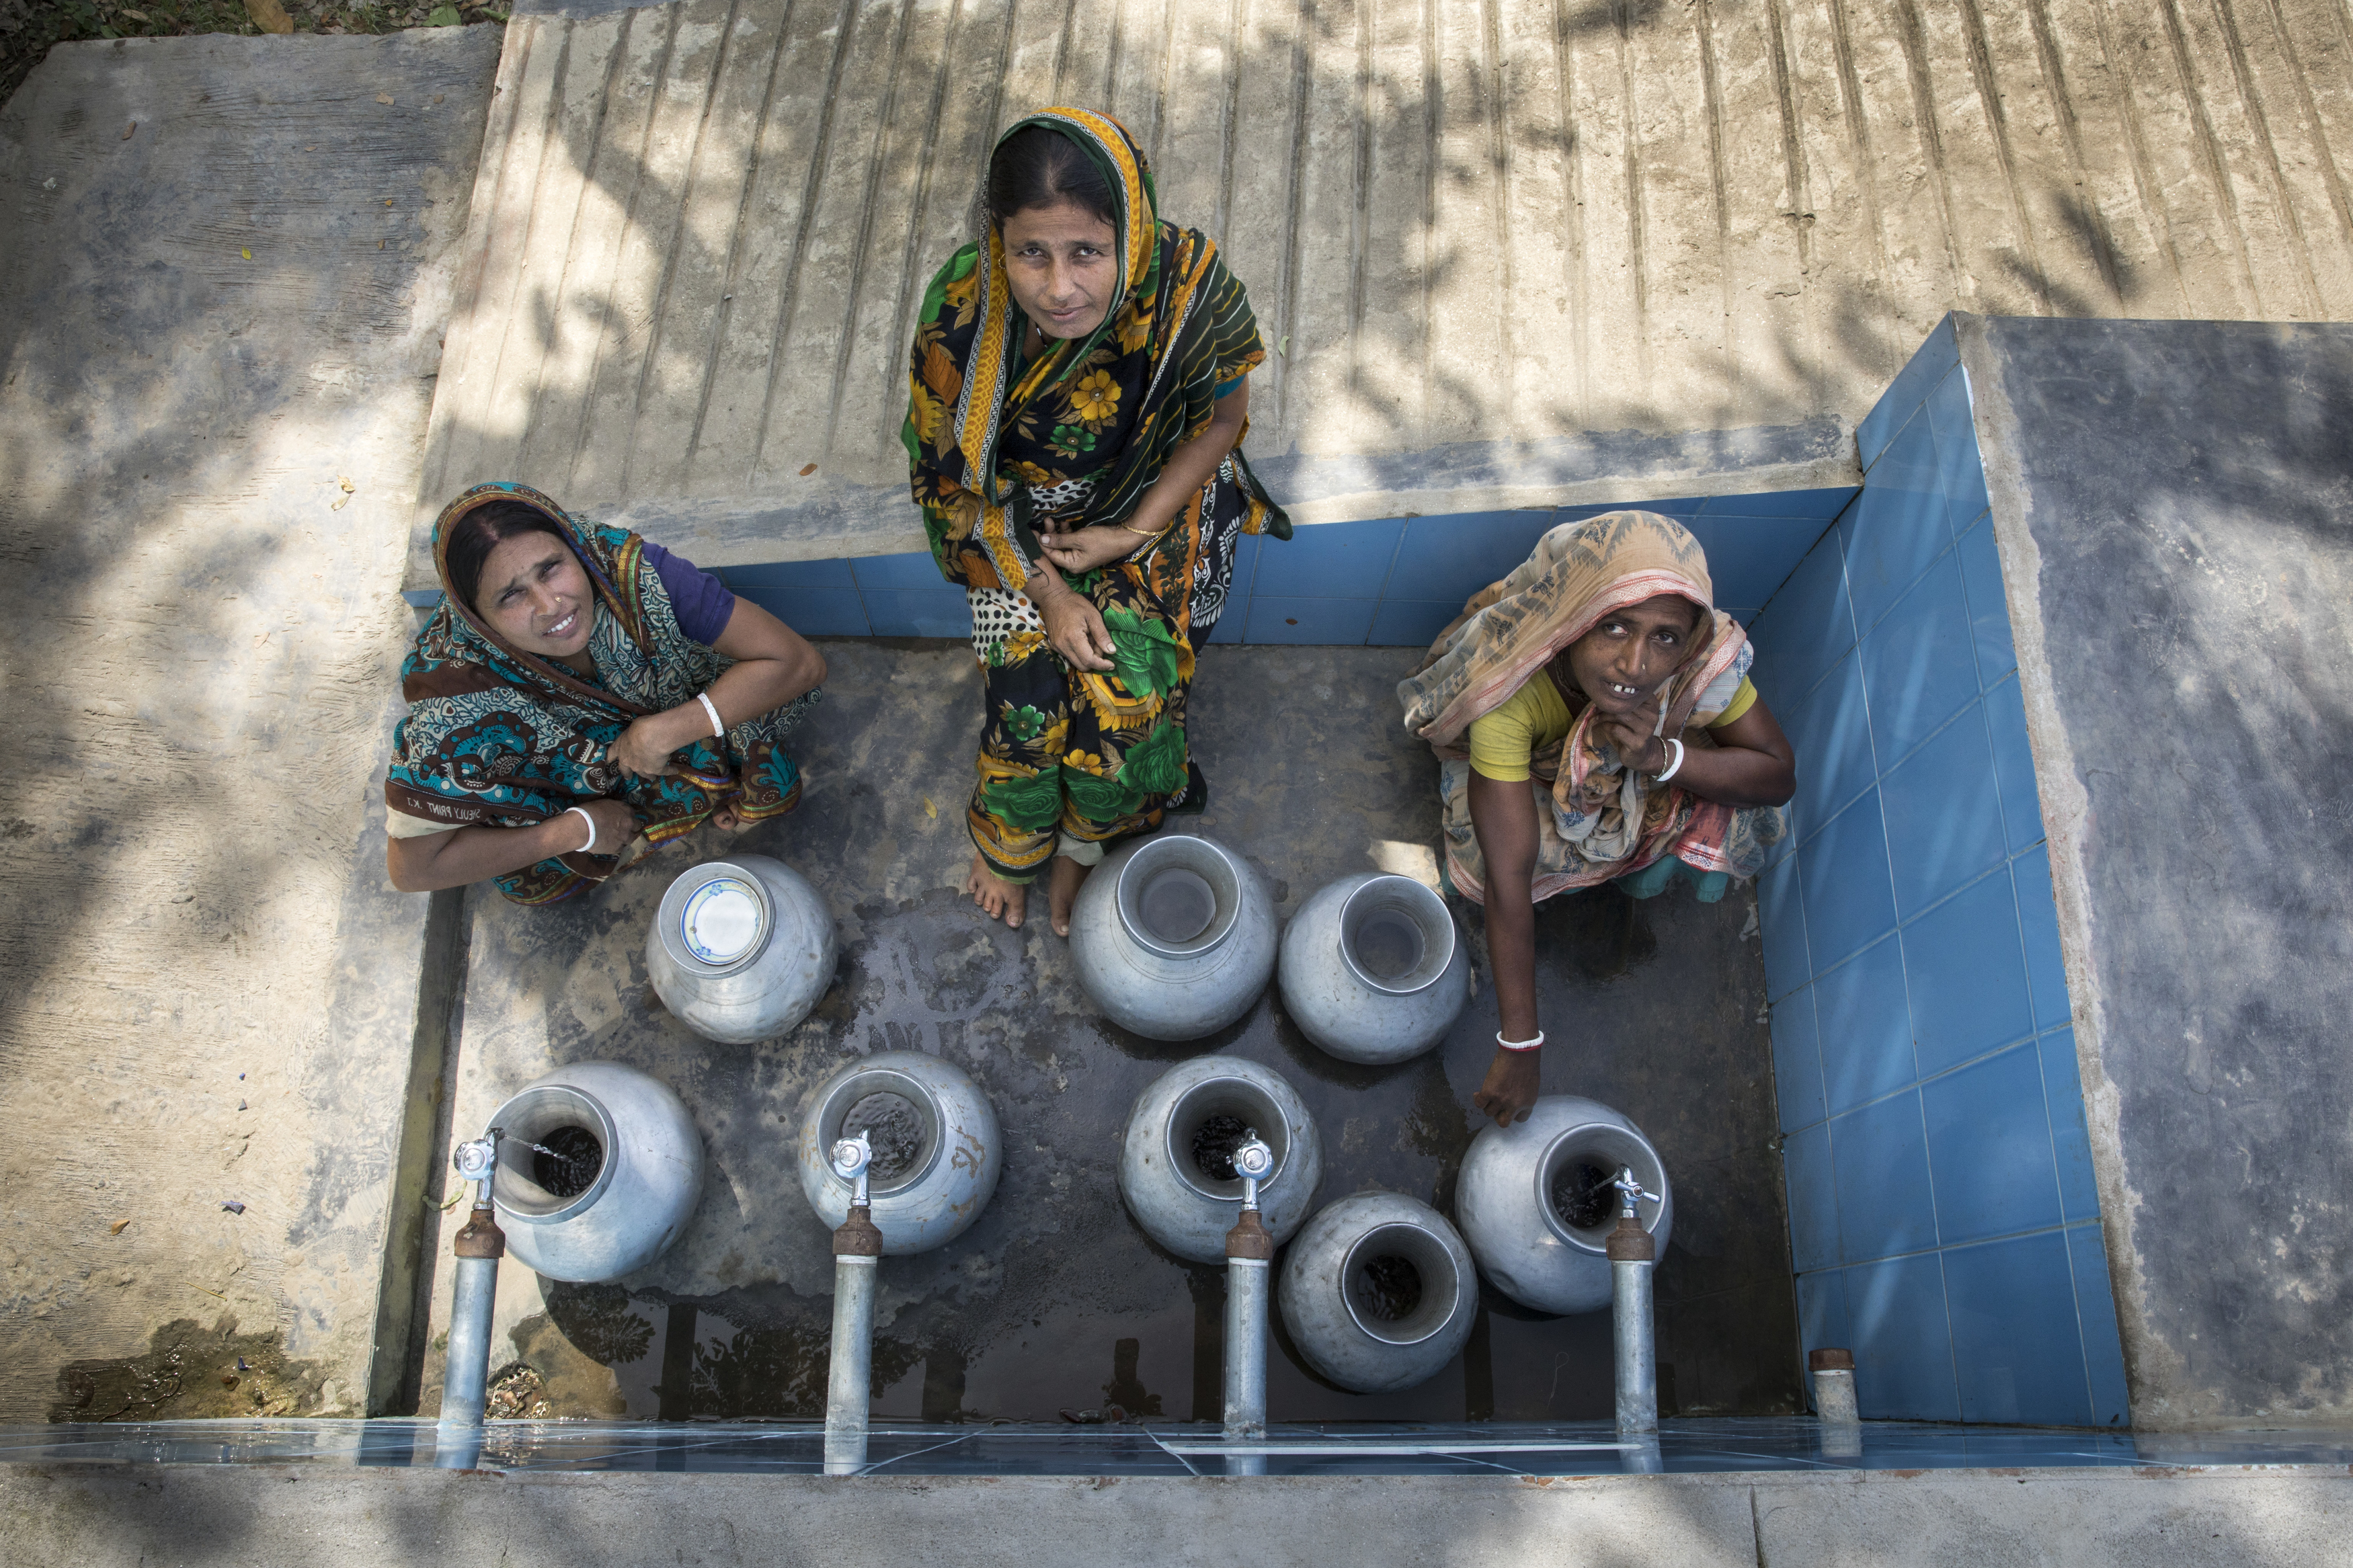 three women looking up at the camera as they fill buckets with water